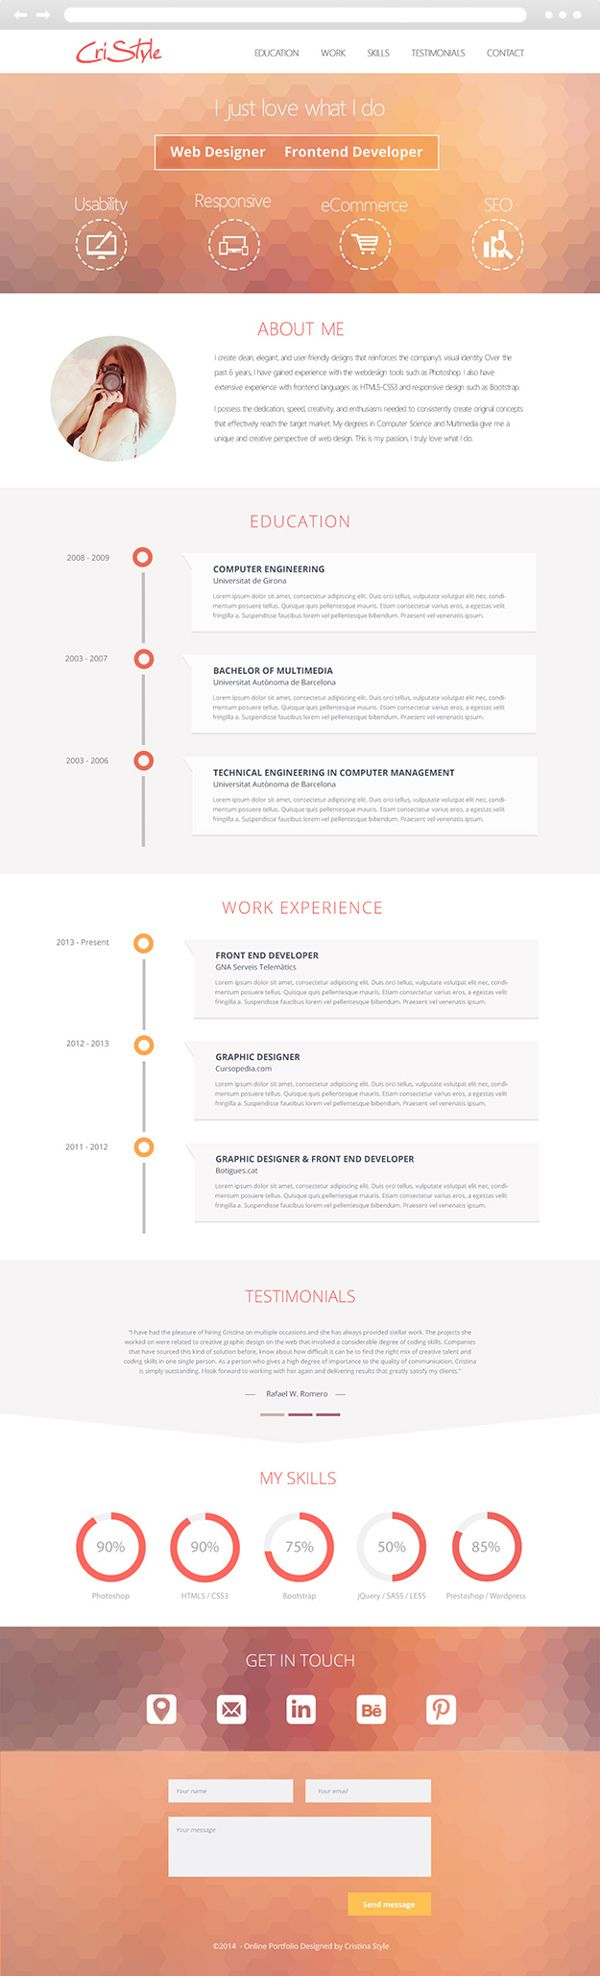 My visual resume - Flat UI Design on Behance